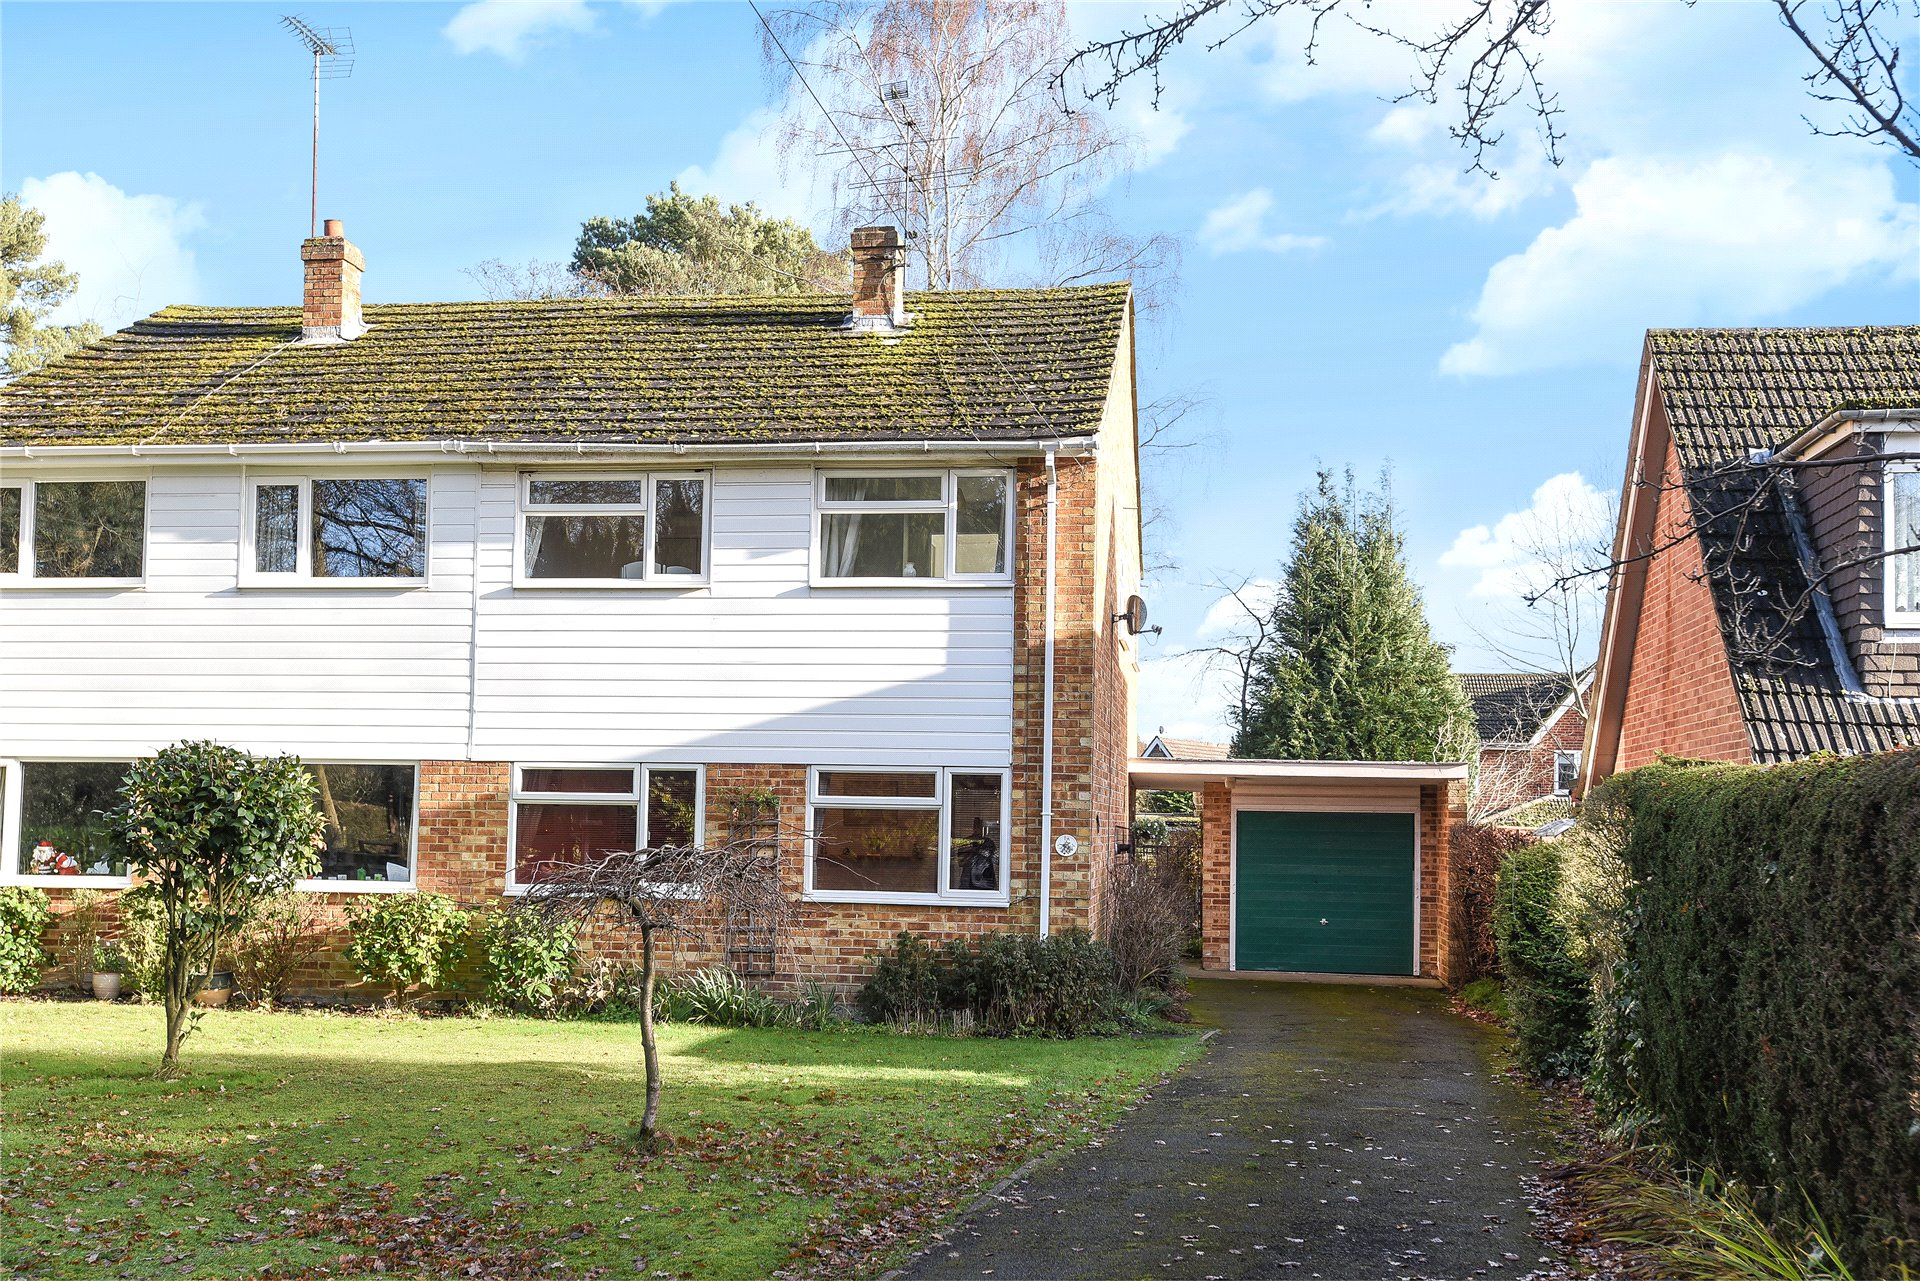 3 Bedrooms Semi Detached House for sale in Pine Drive, Finchampstead, Wokingham, Berkshire, RG40